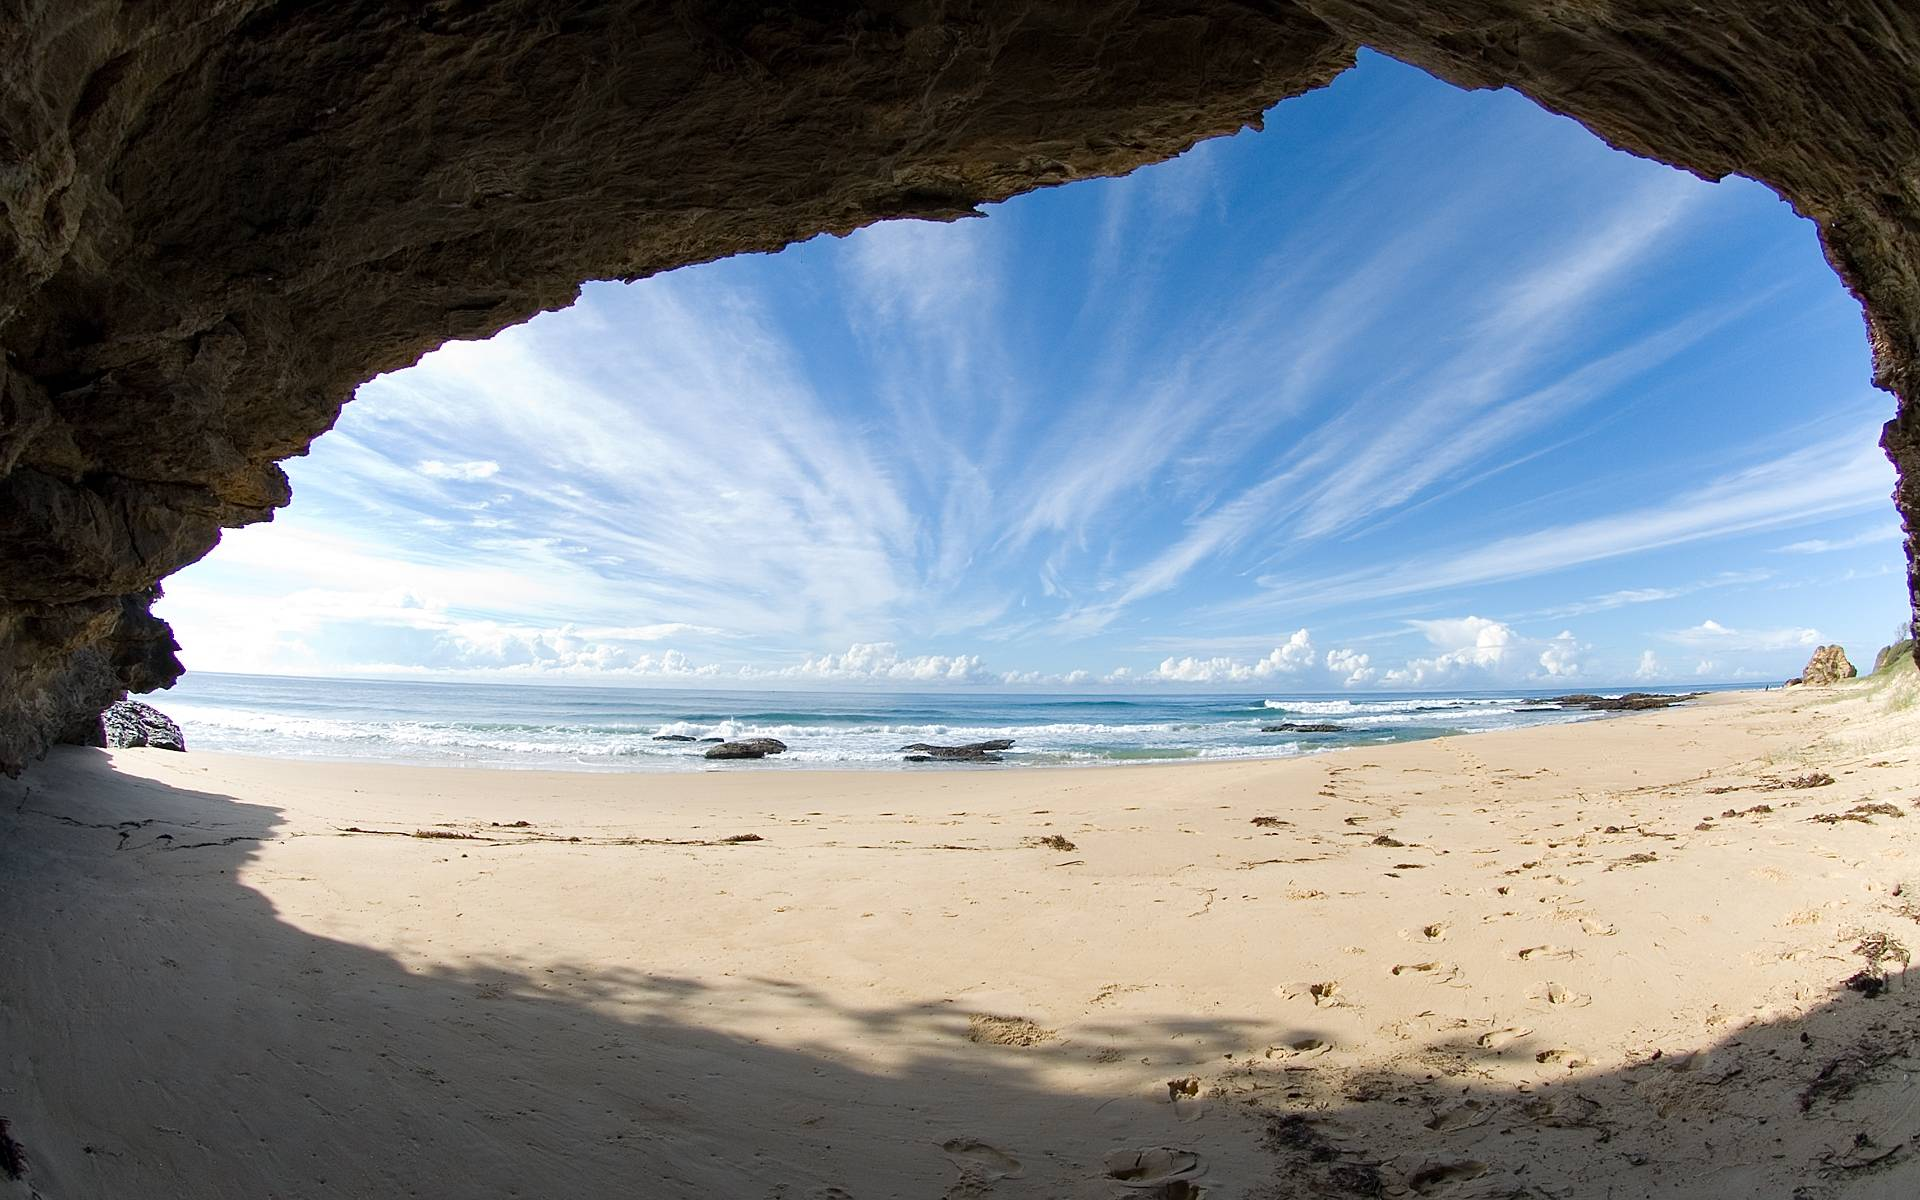 Beach Themed Backgrounds - Wallpaper Cave